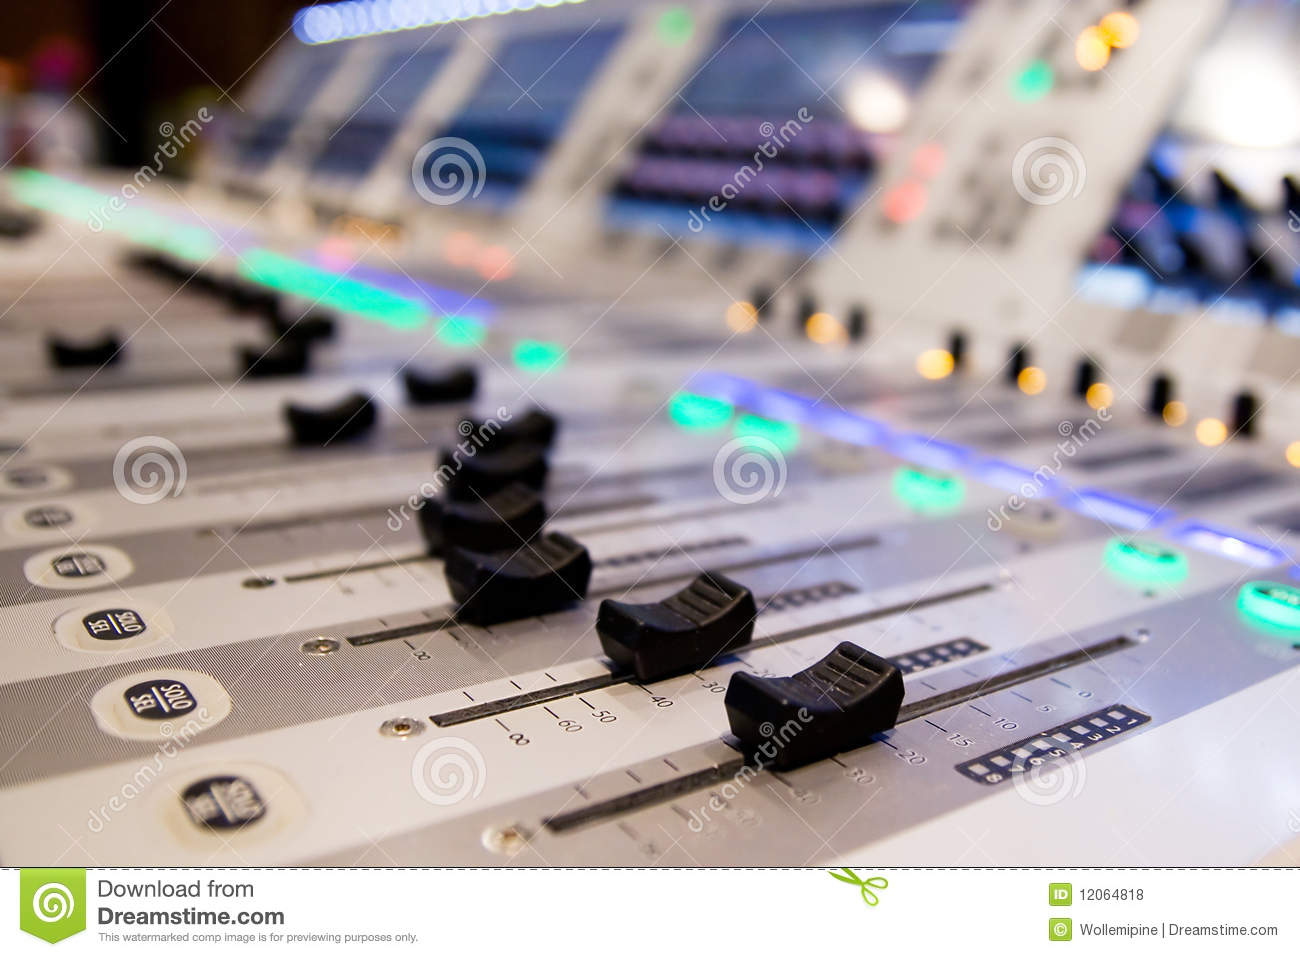 Mix Audio to Video, Video Mixer, Join Convert mix Video